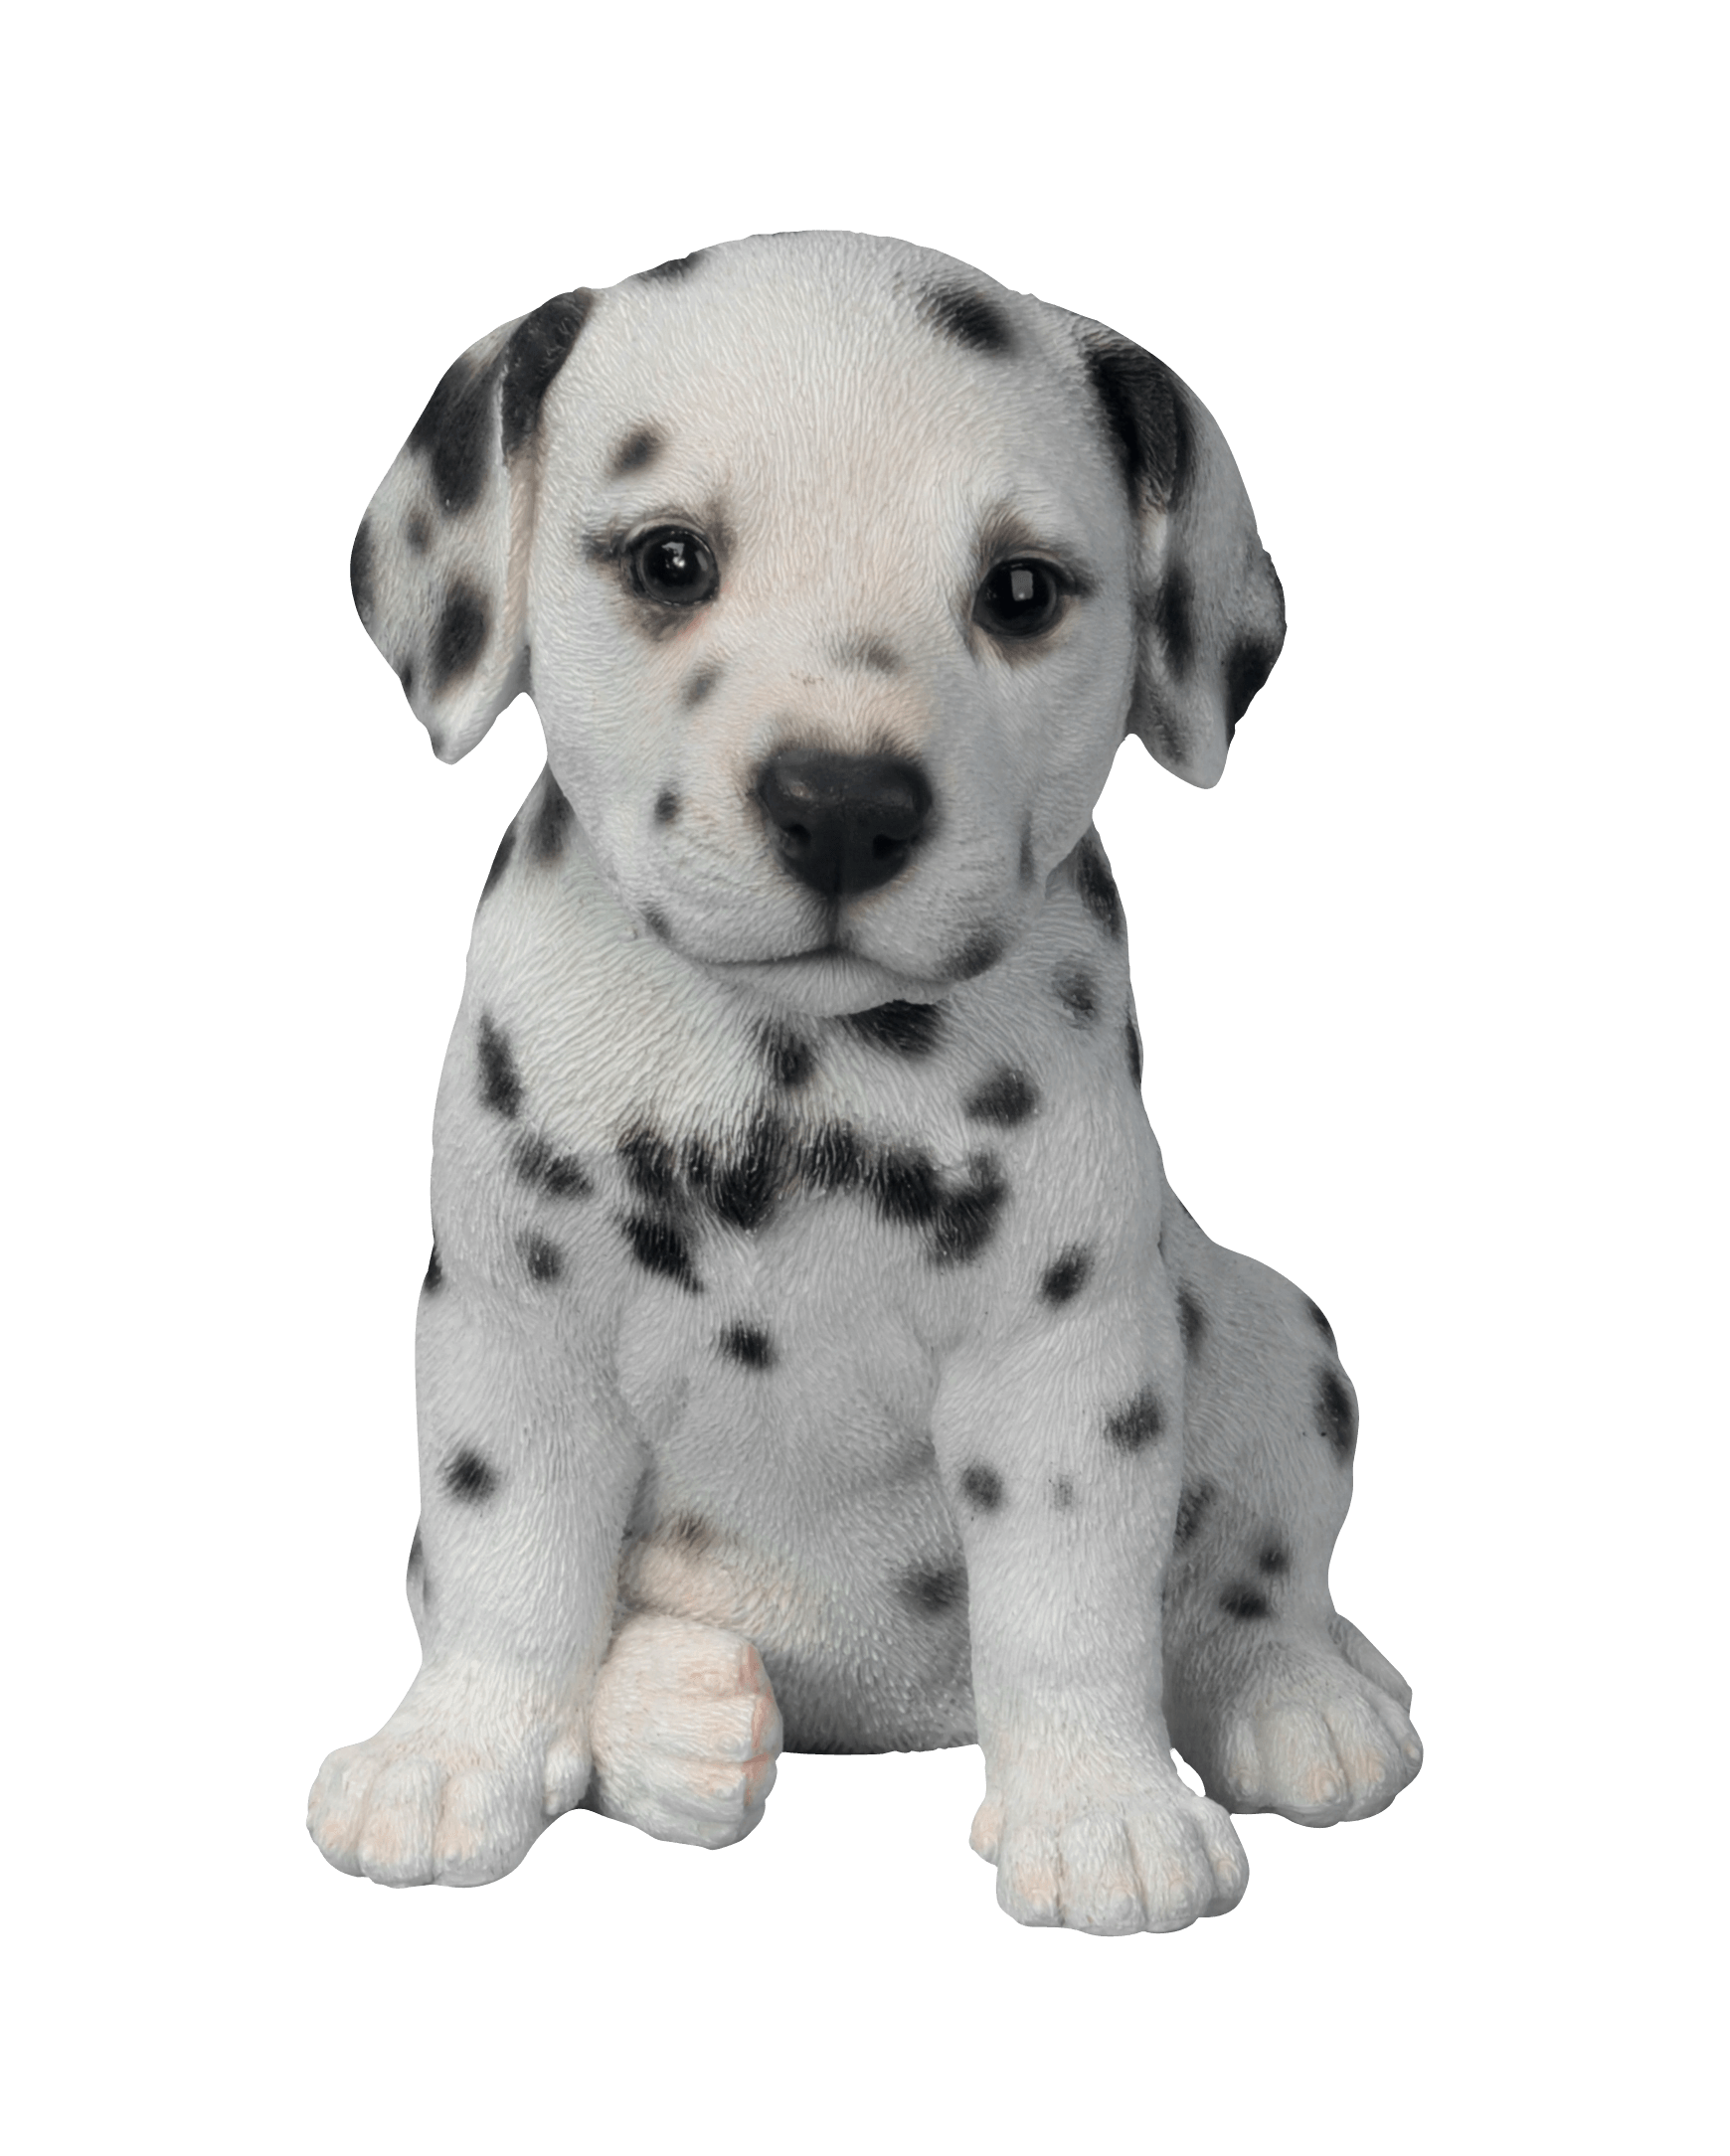 PNG Puppy Dog - 62186